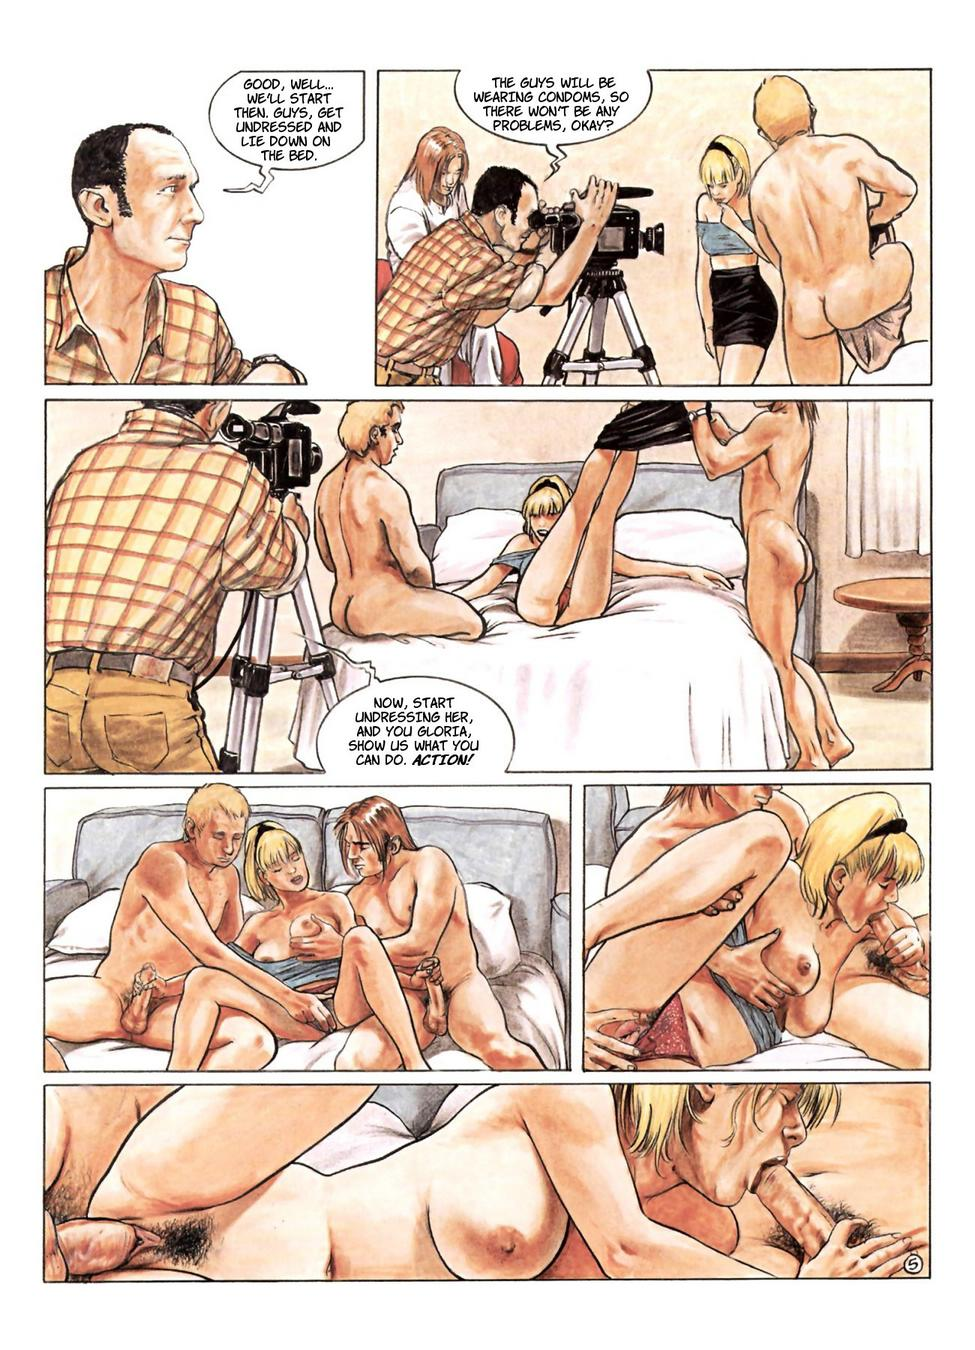 naked comic book women having sex